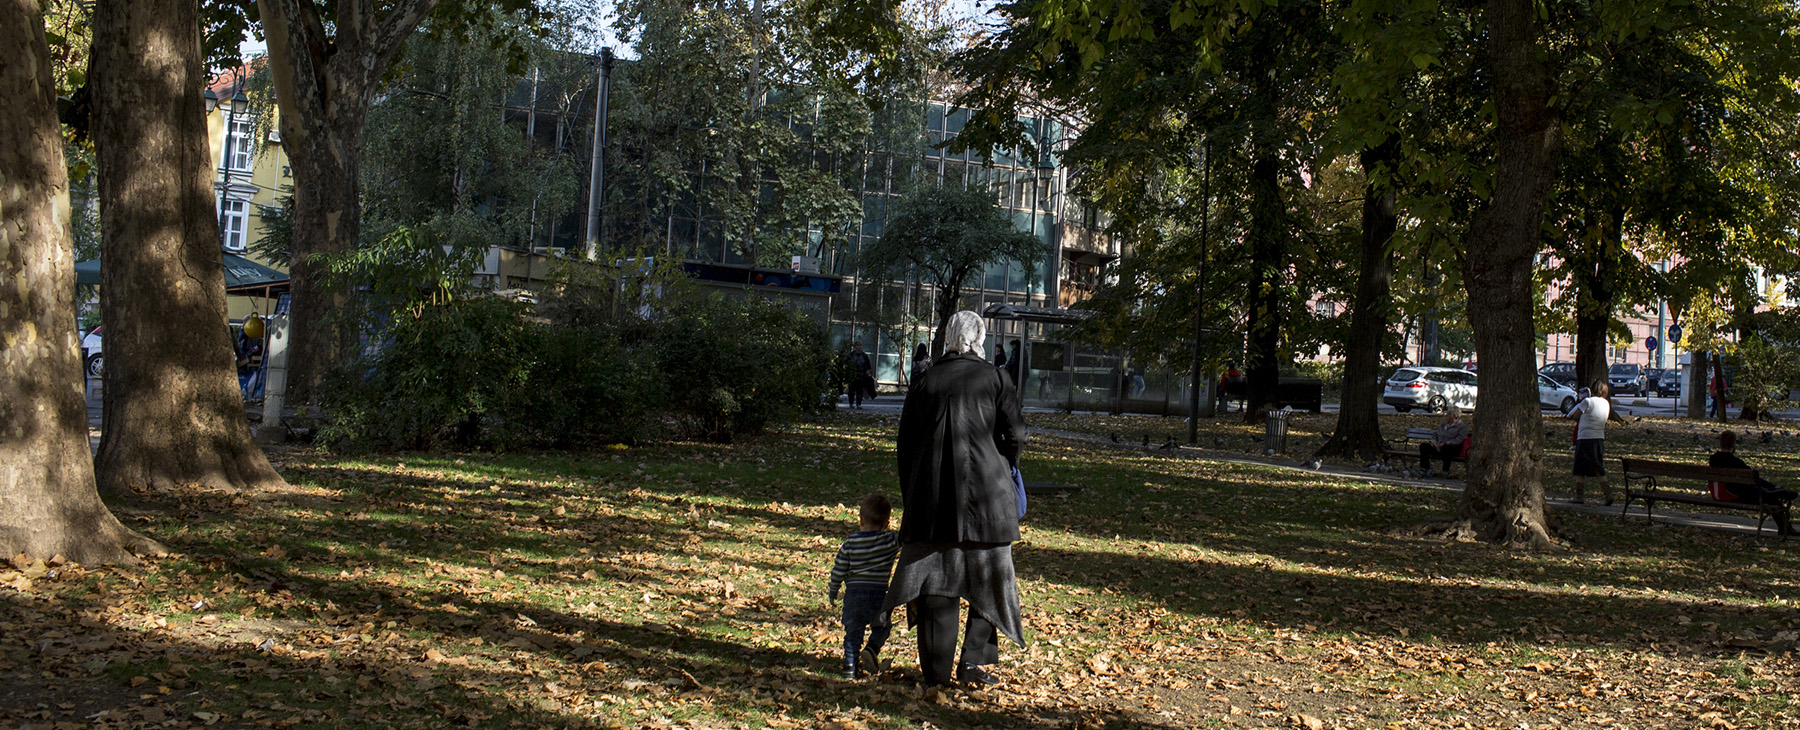 The ordeal faced by victims of sexual violence in Bosnia